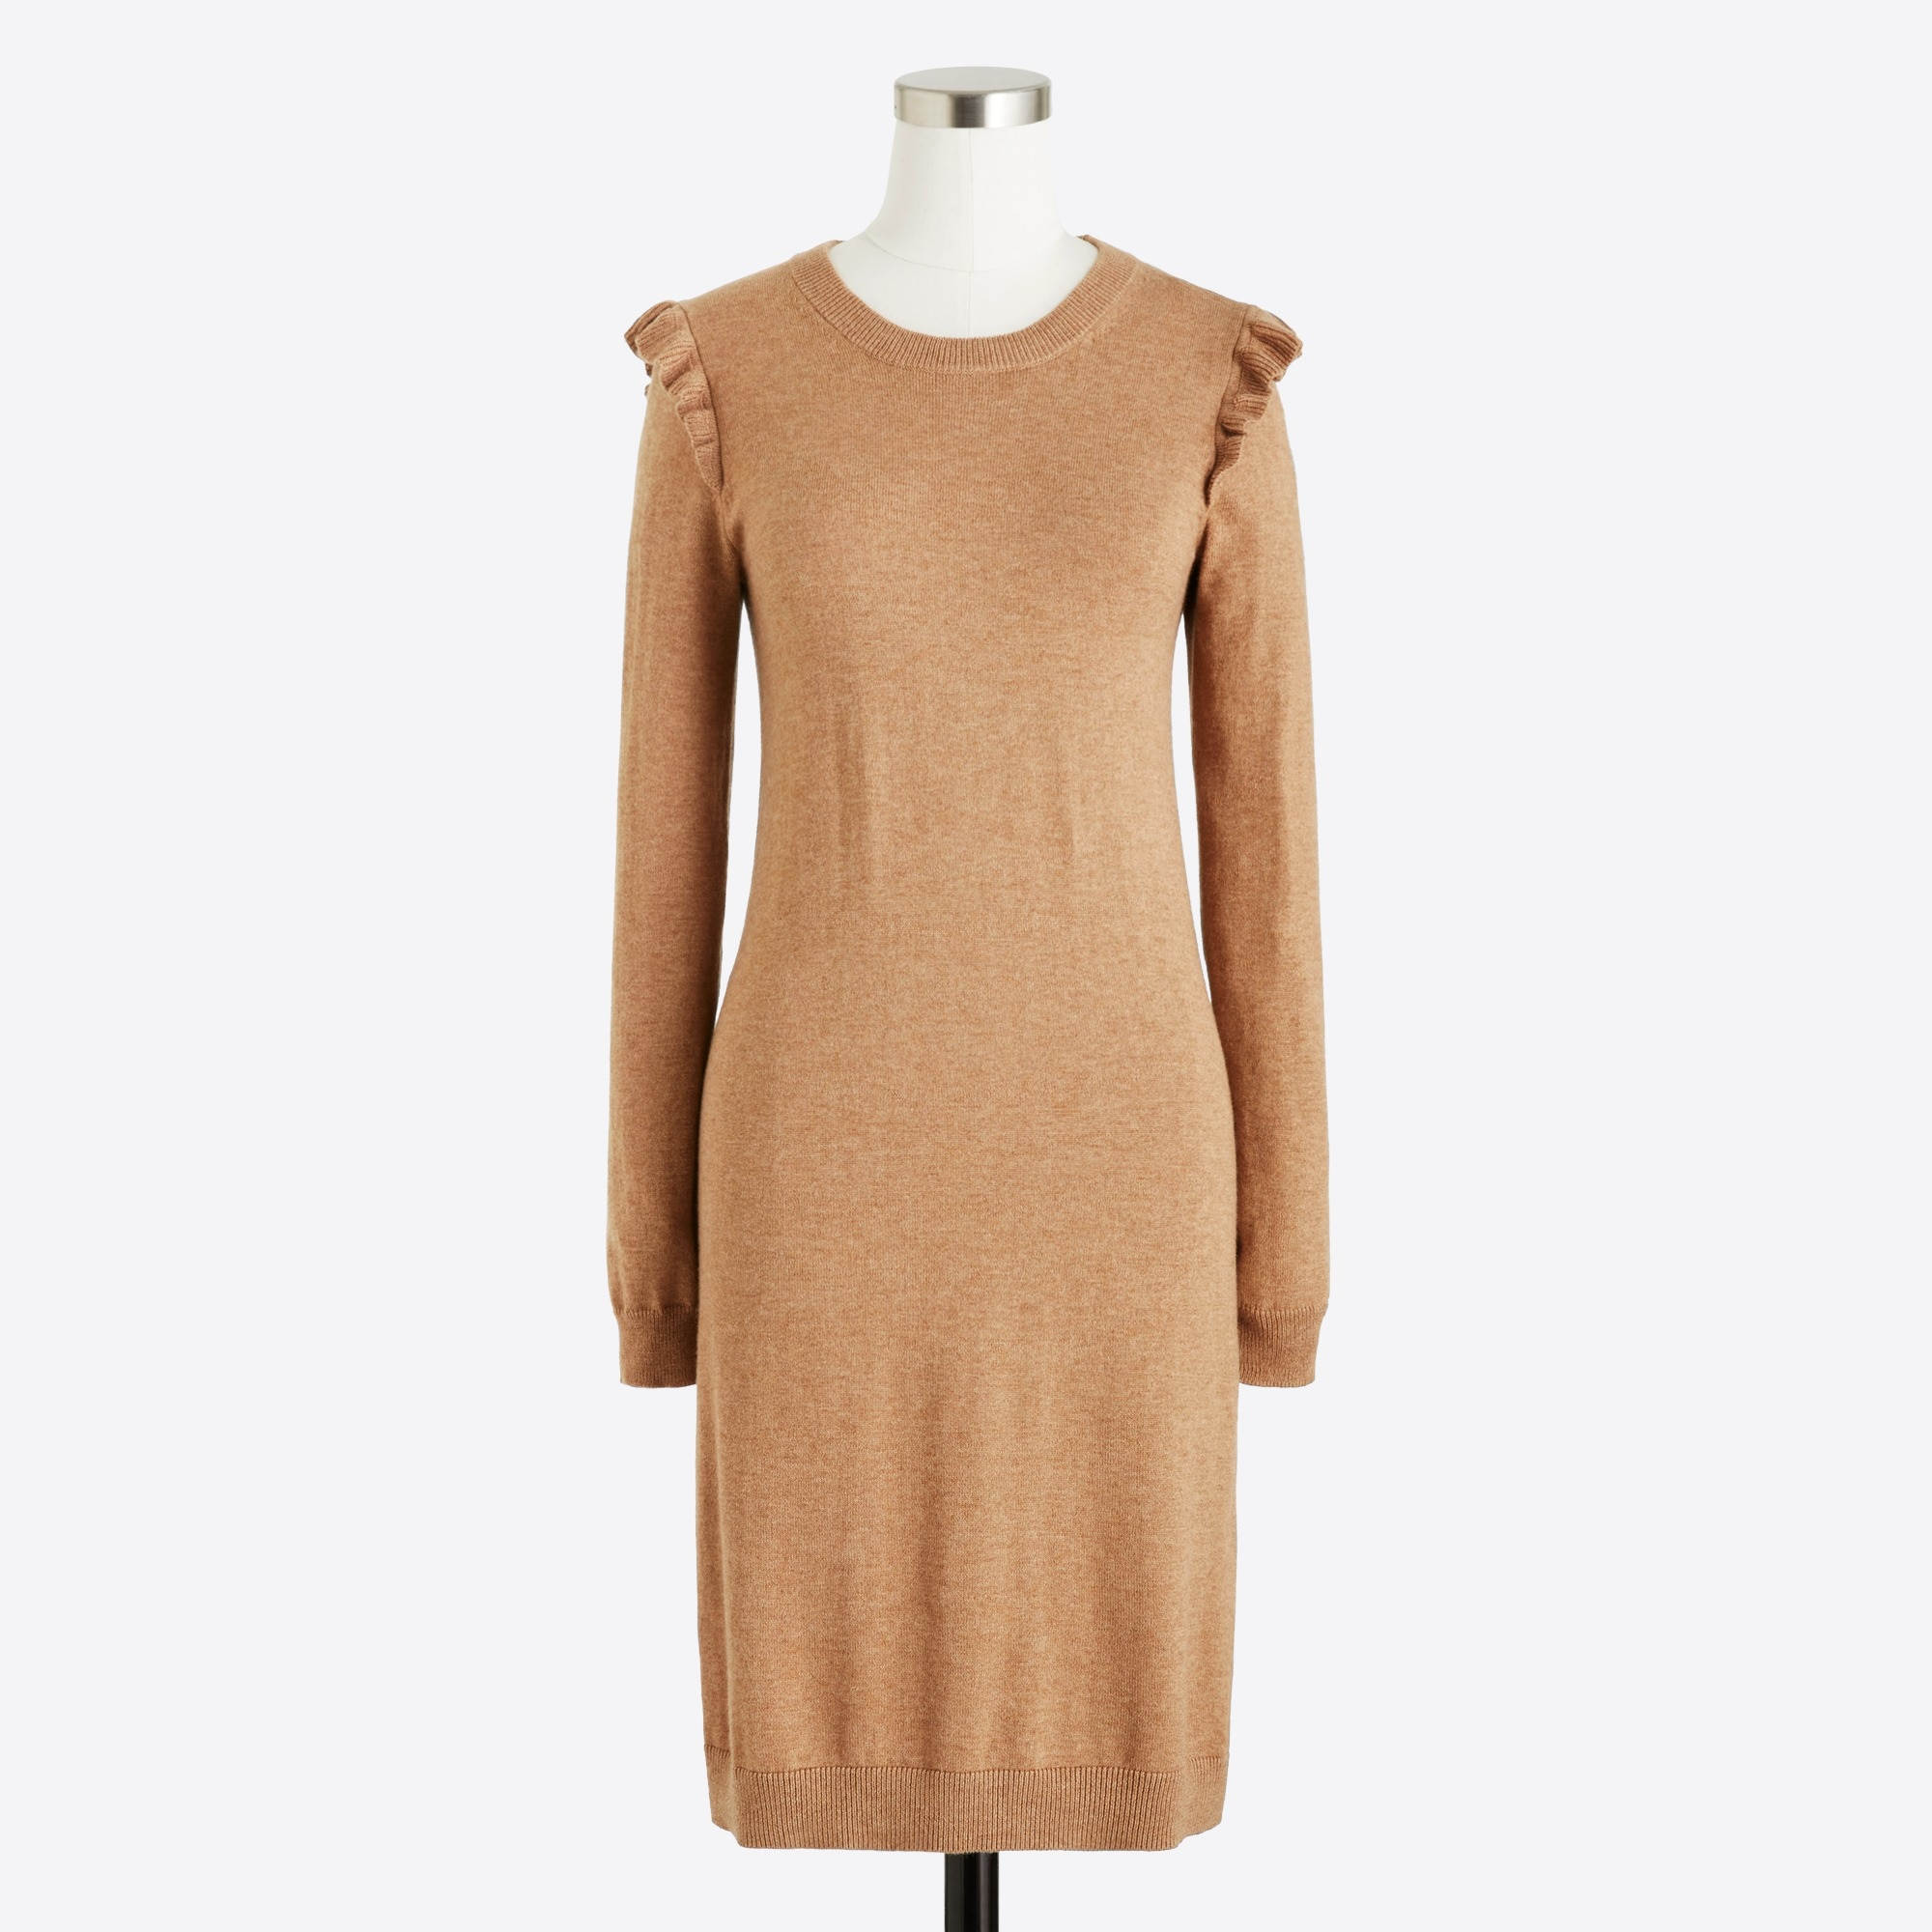 Image 2 for Ruffle-hem sweater dress